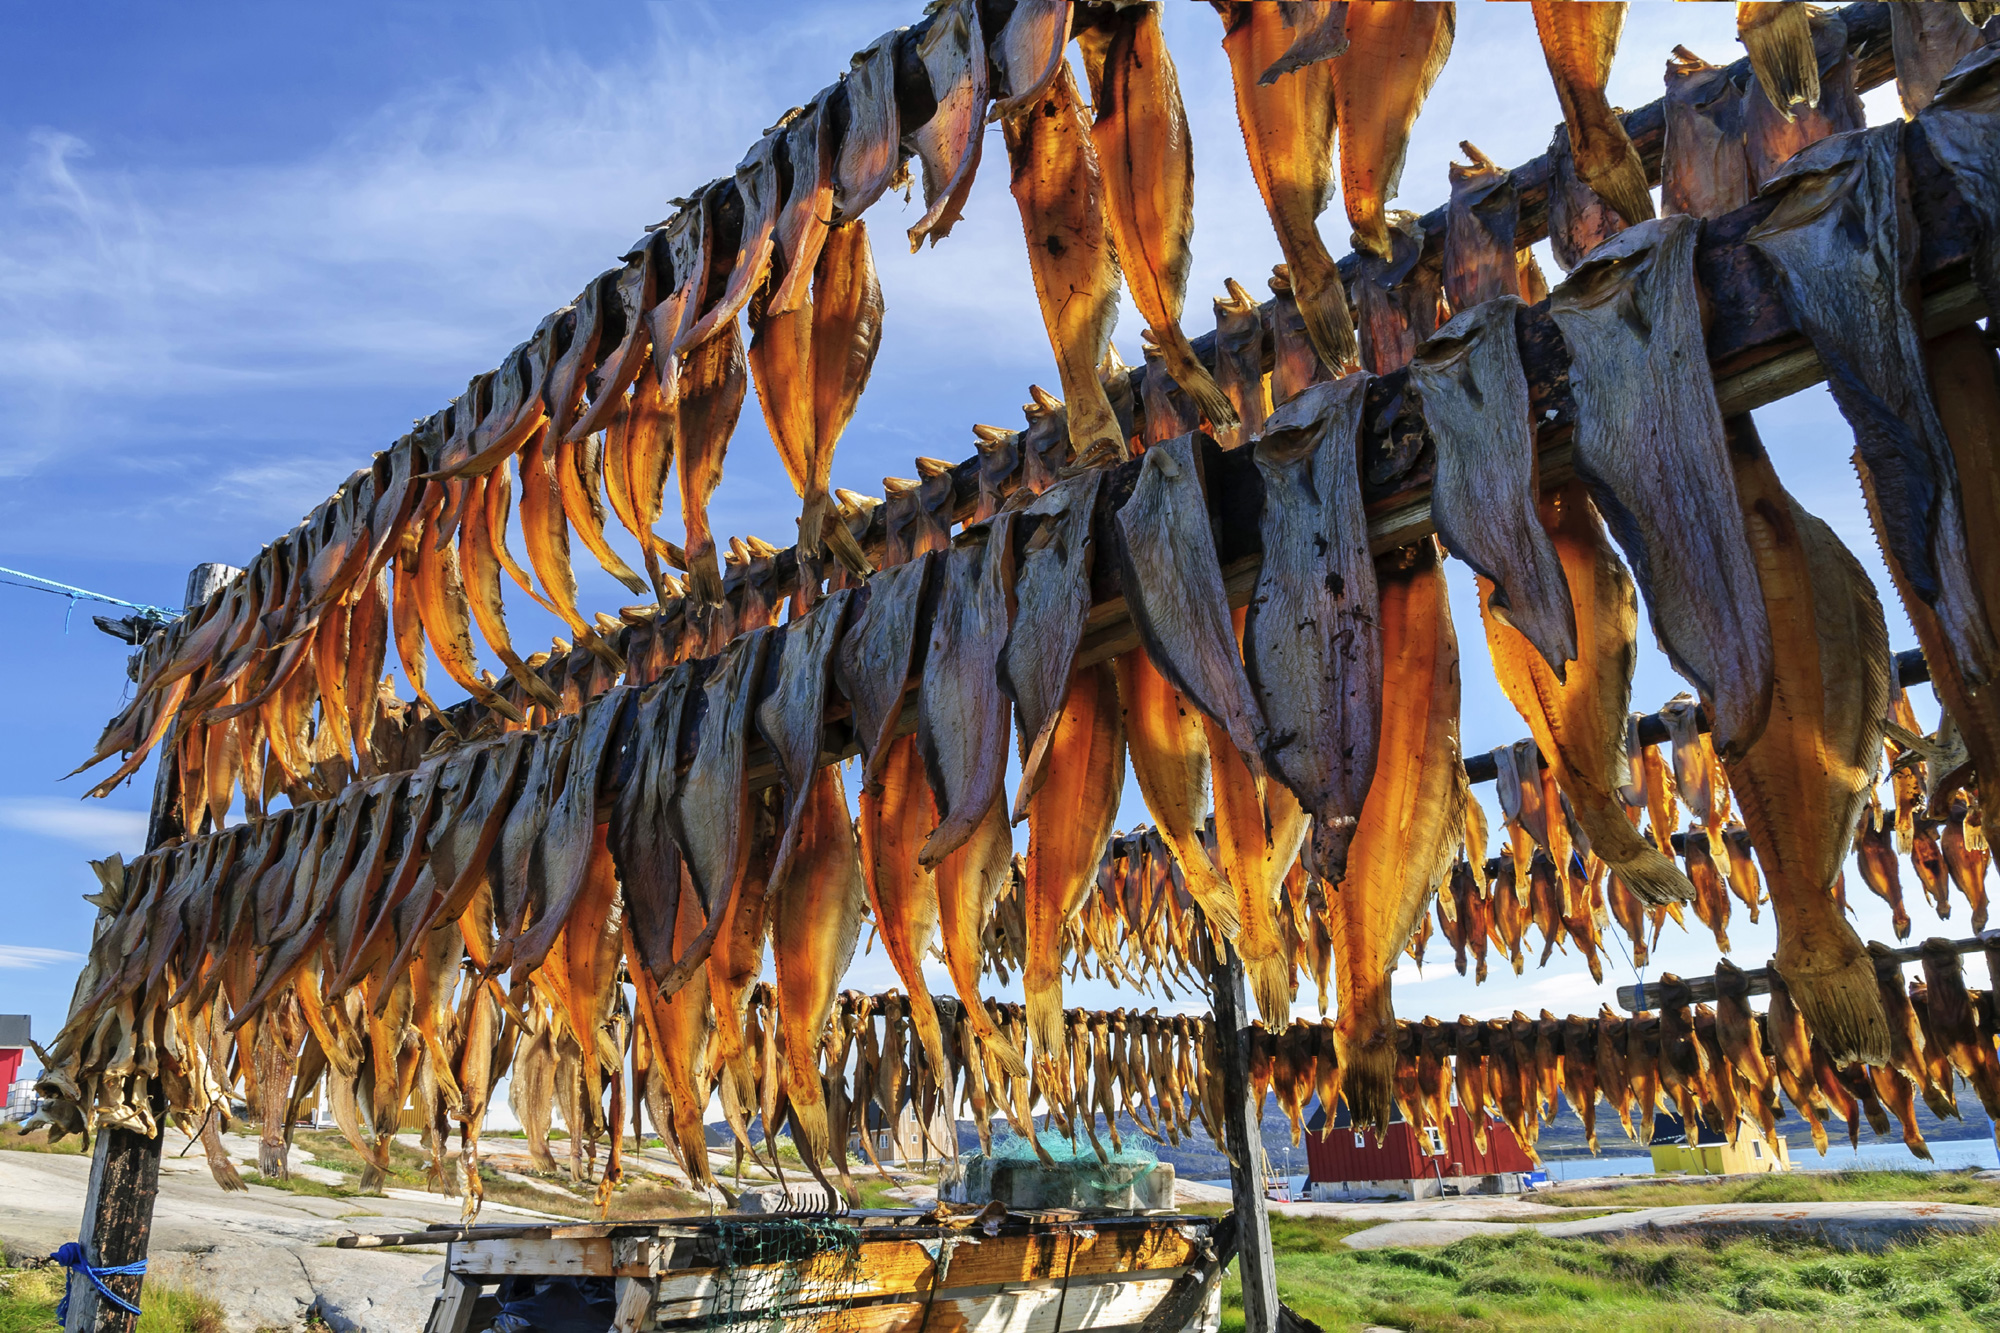 west greenland dried fish in rodebay settlement istk